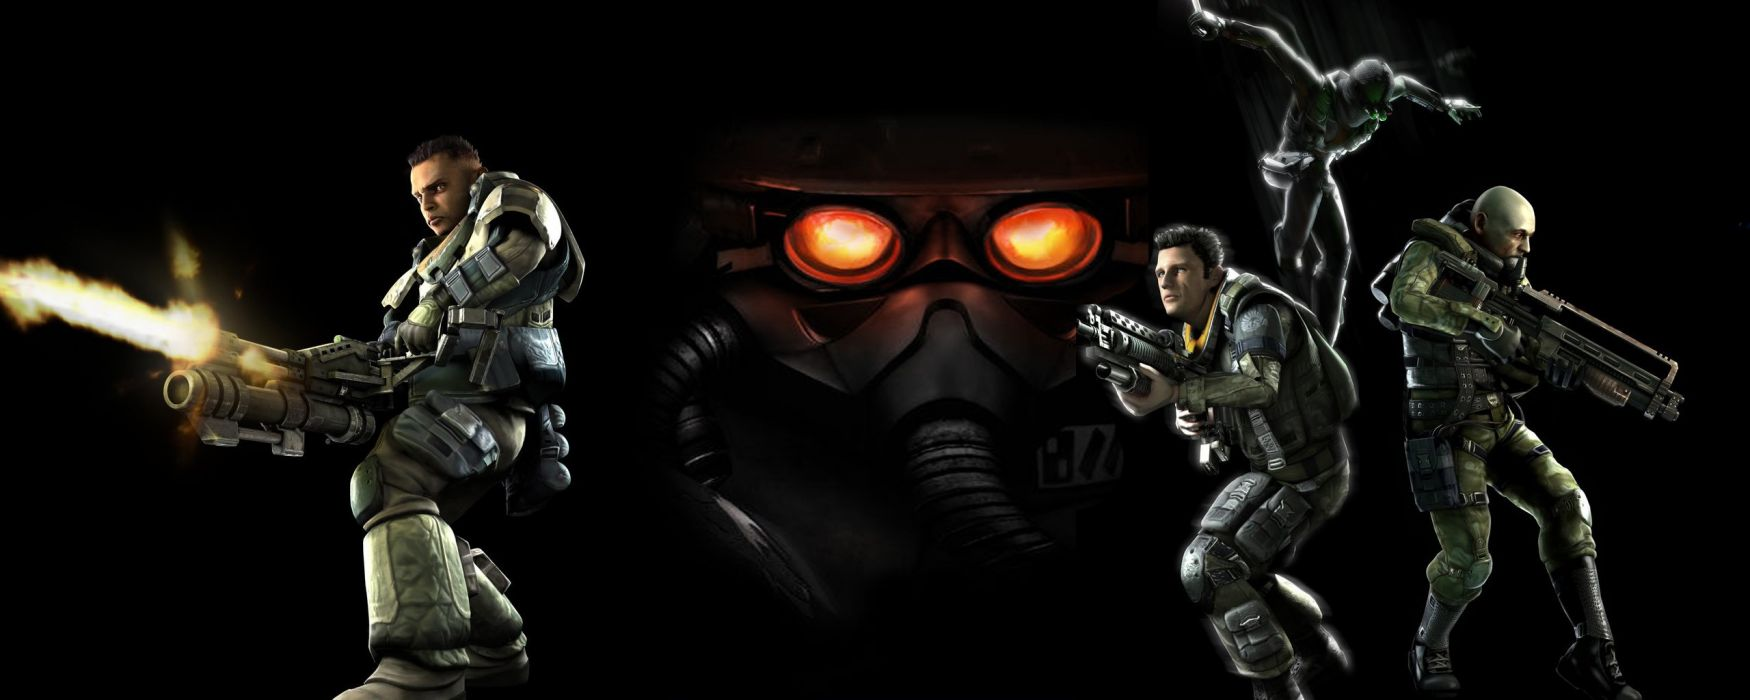 KILLZONE warrior soldier sci-fi weapon gun   g wallpaper